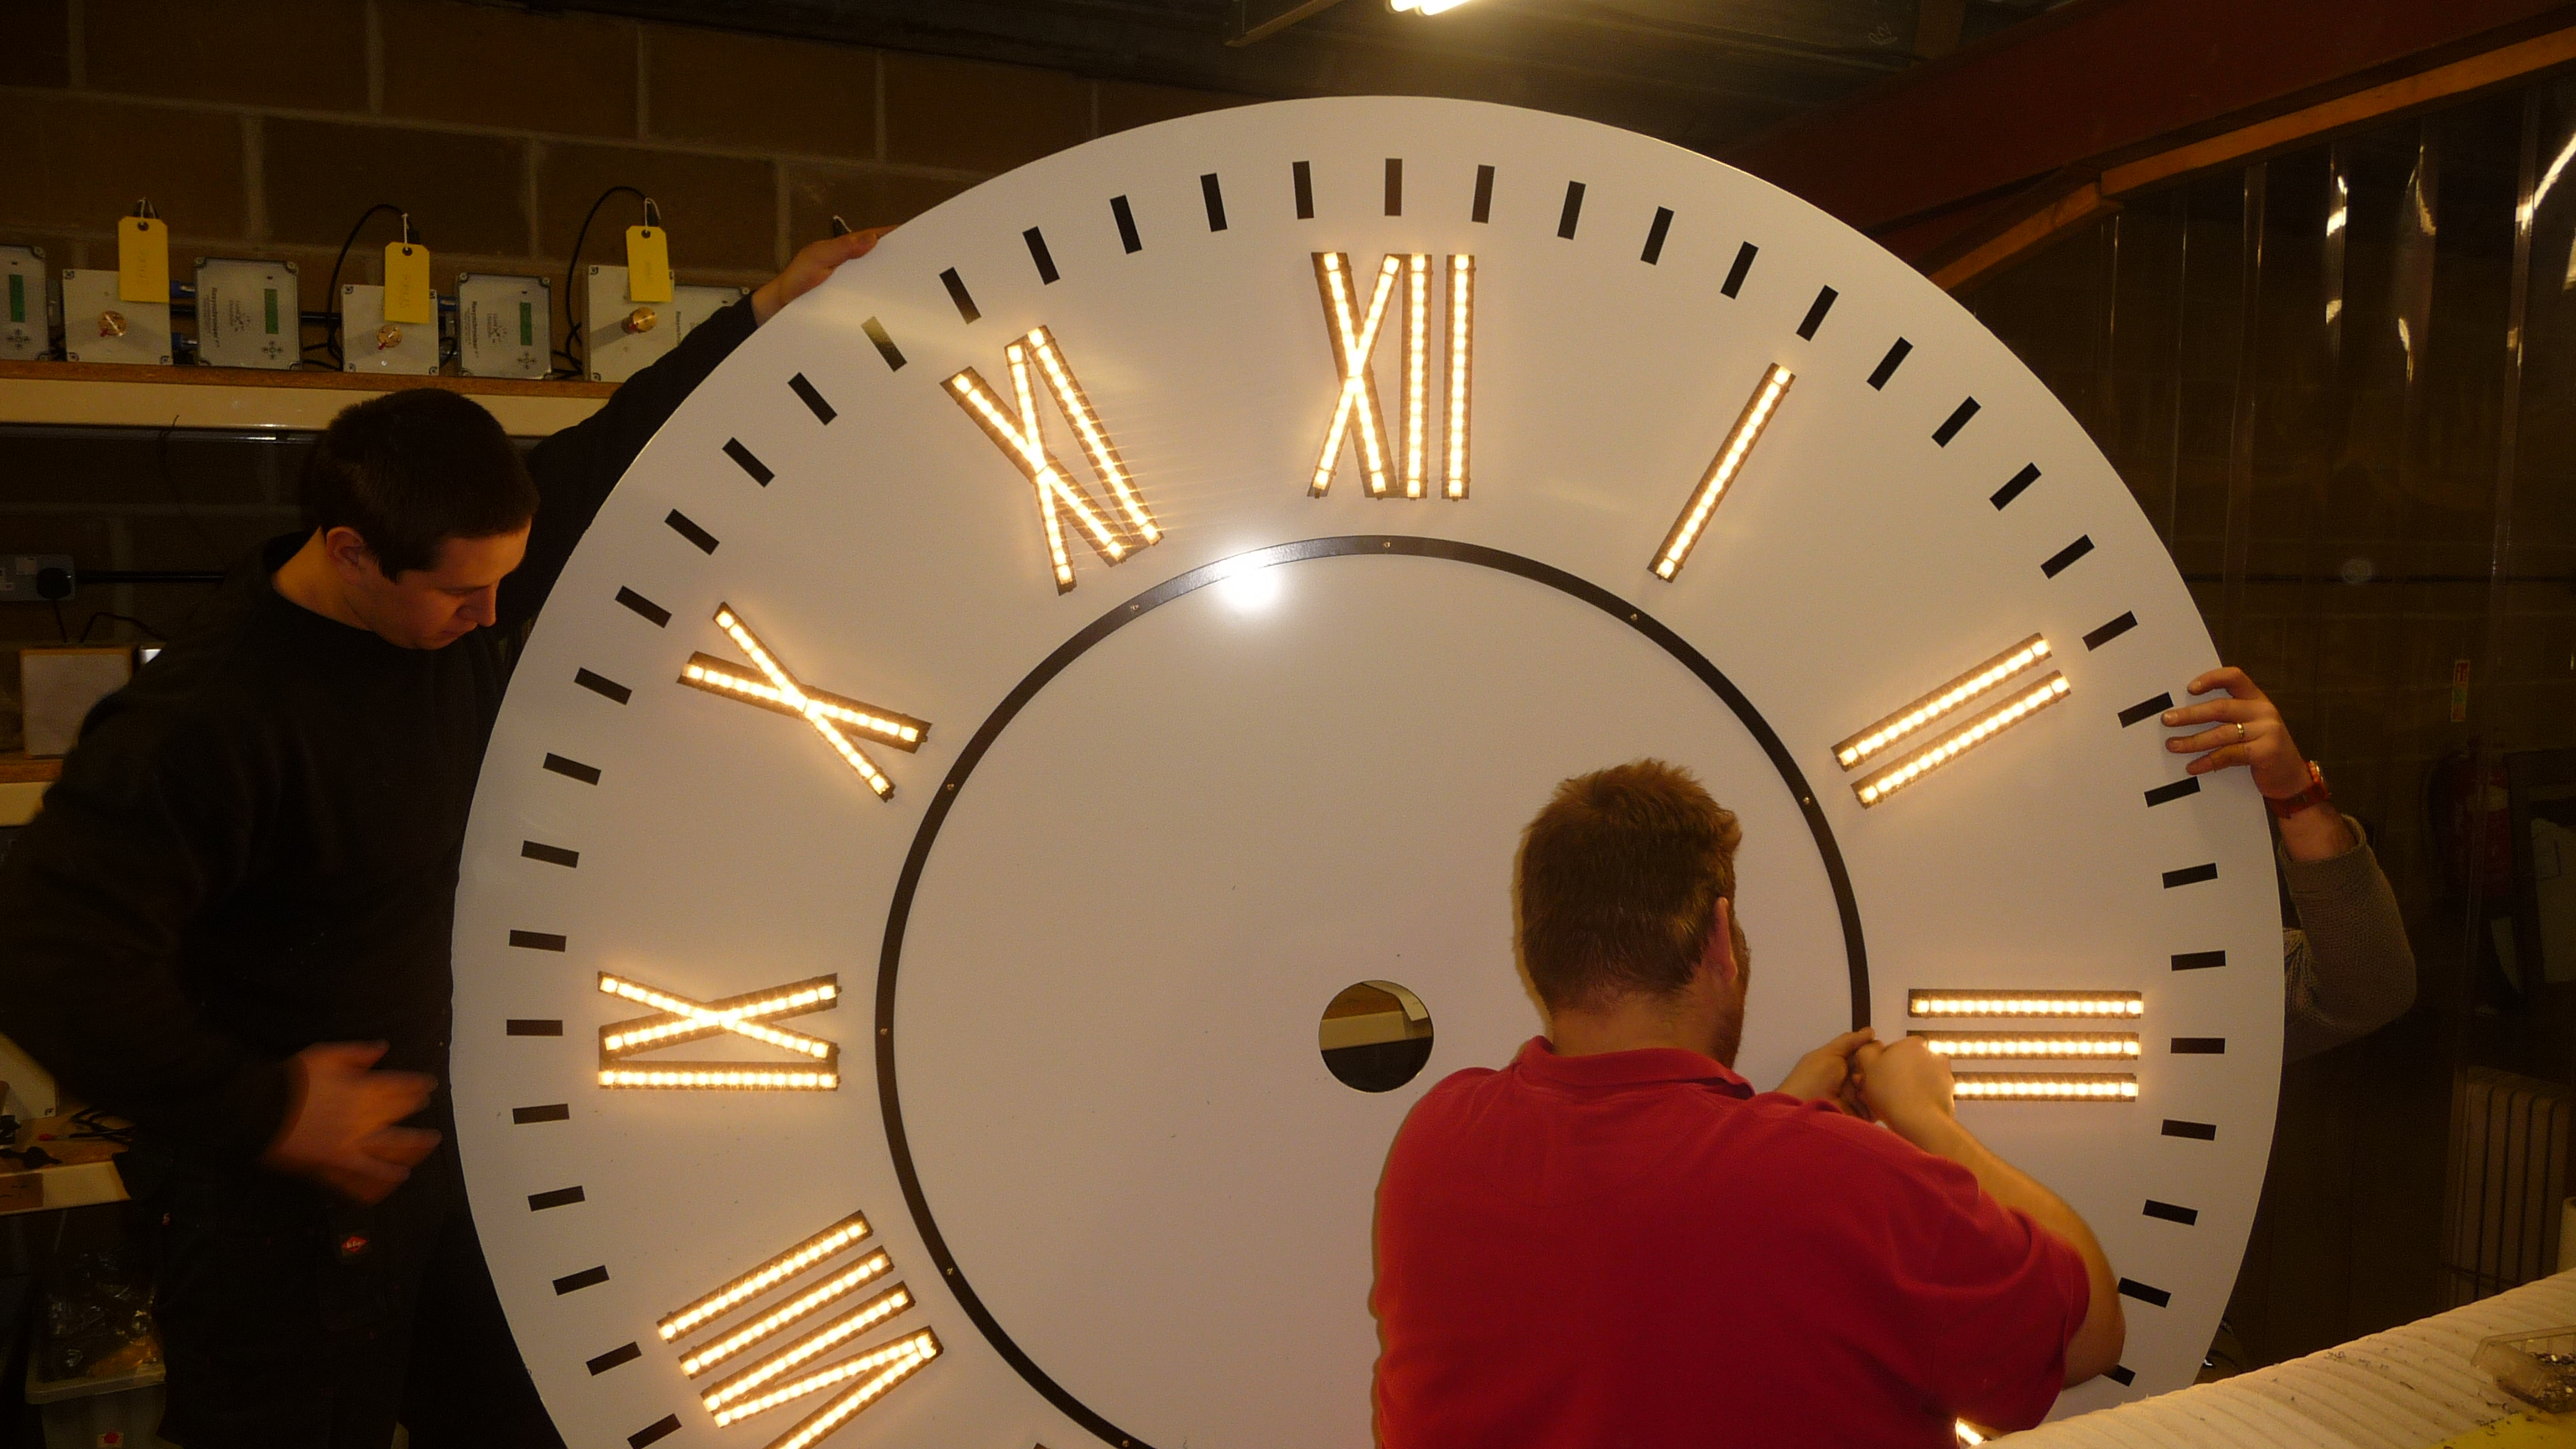 Fitting lighting on clock face